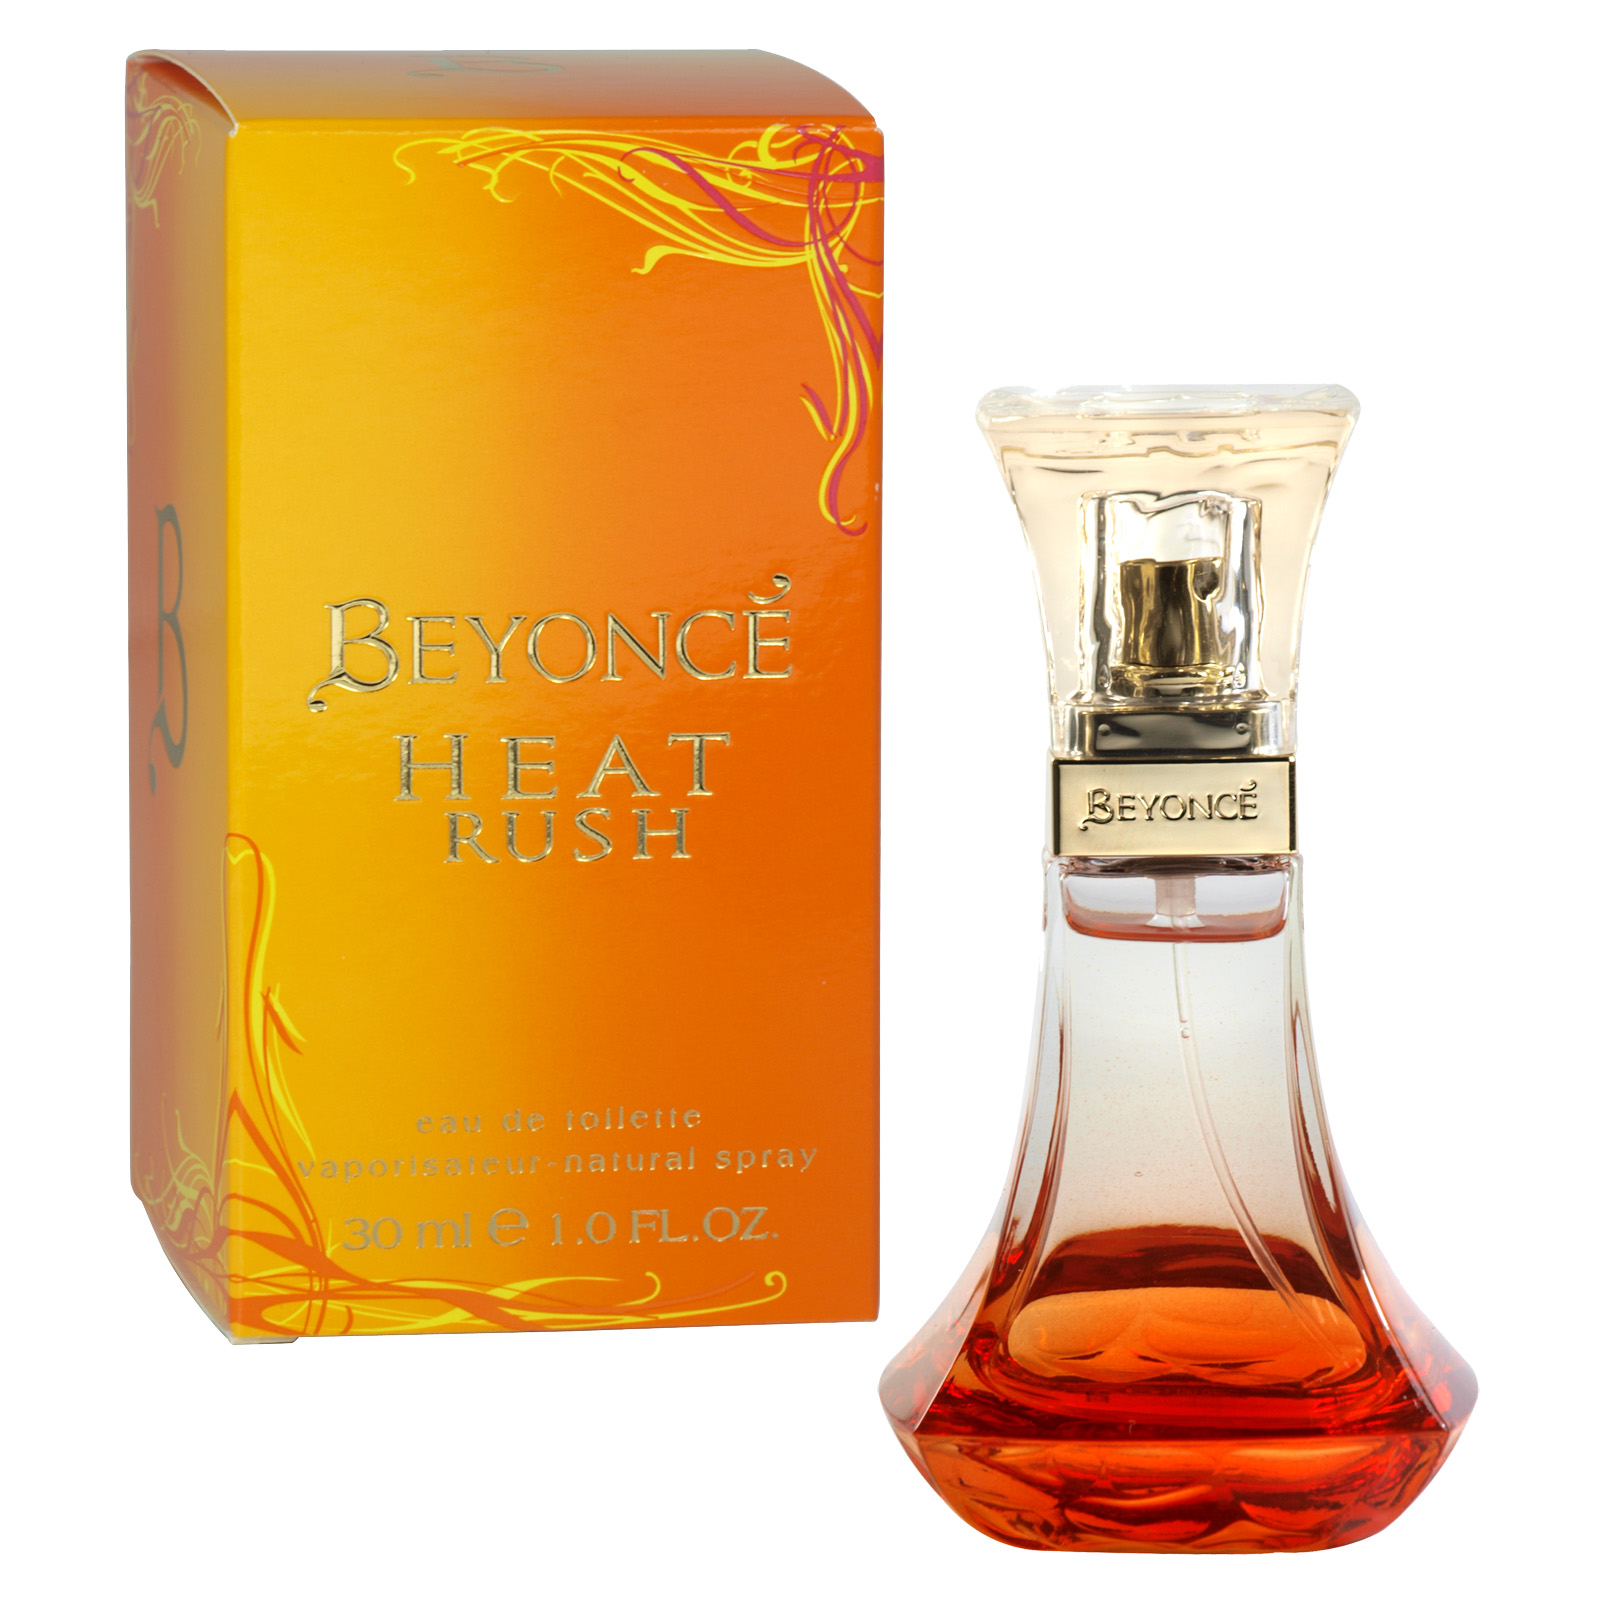 BEYONCE 30ML EDP SPRAY HEAT RUSH